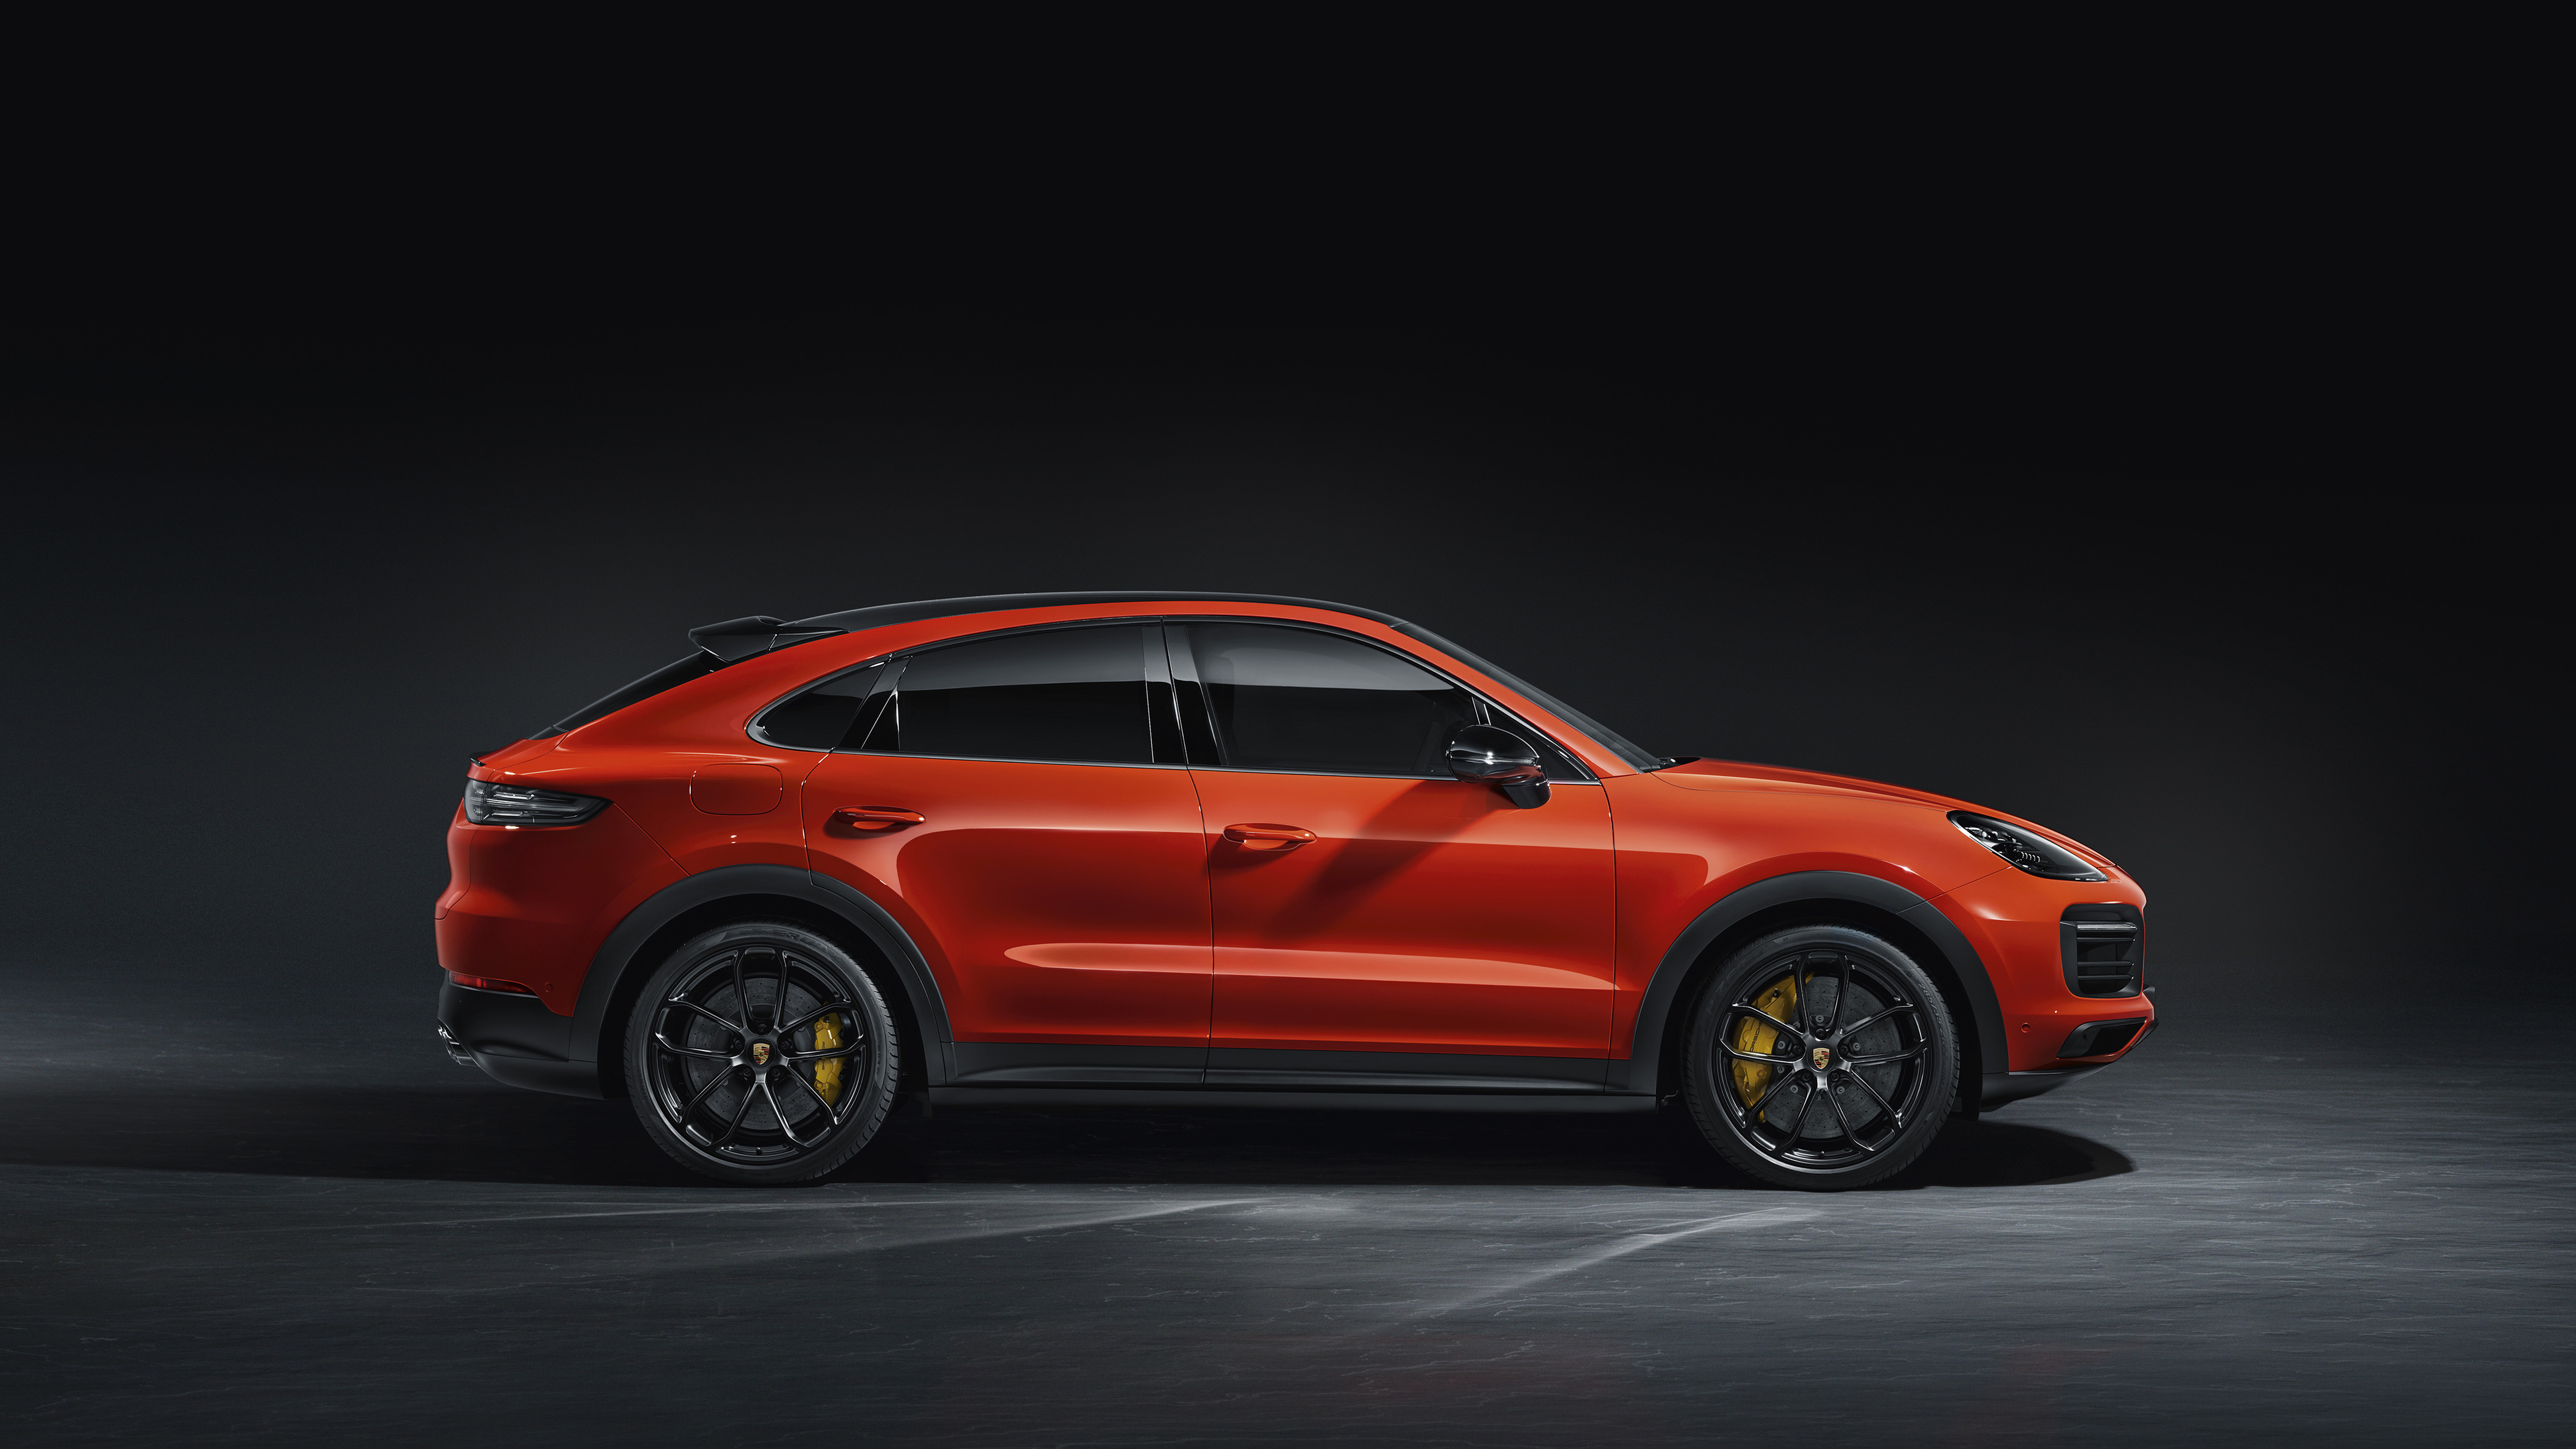 Porsche Cayenne Coupe 2019 4K 3 Wallpaper HD Car Wallpapers ID 5120x2880